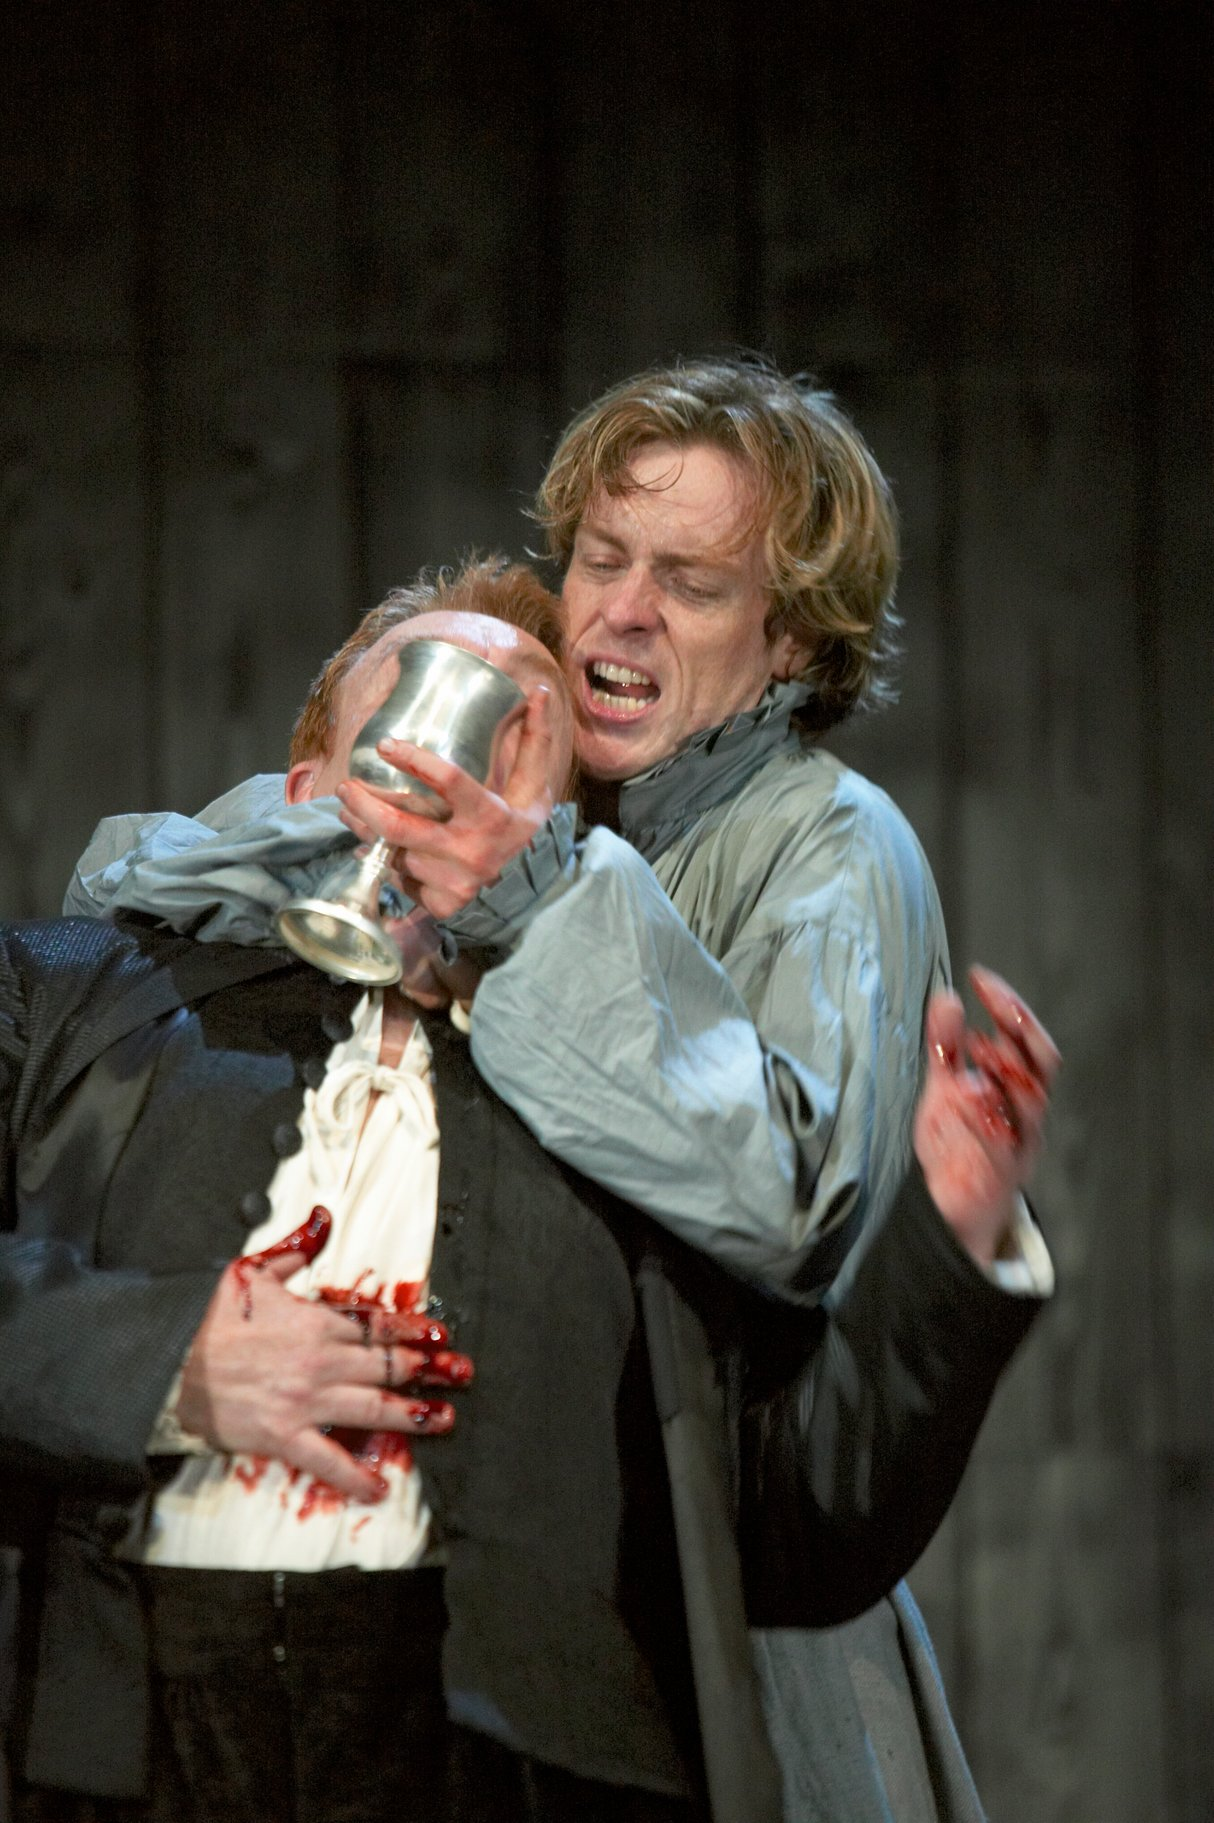 Hamlet kills Claudius with the poisoned chalice.